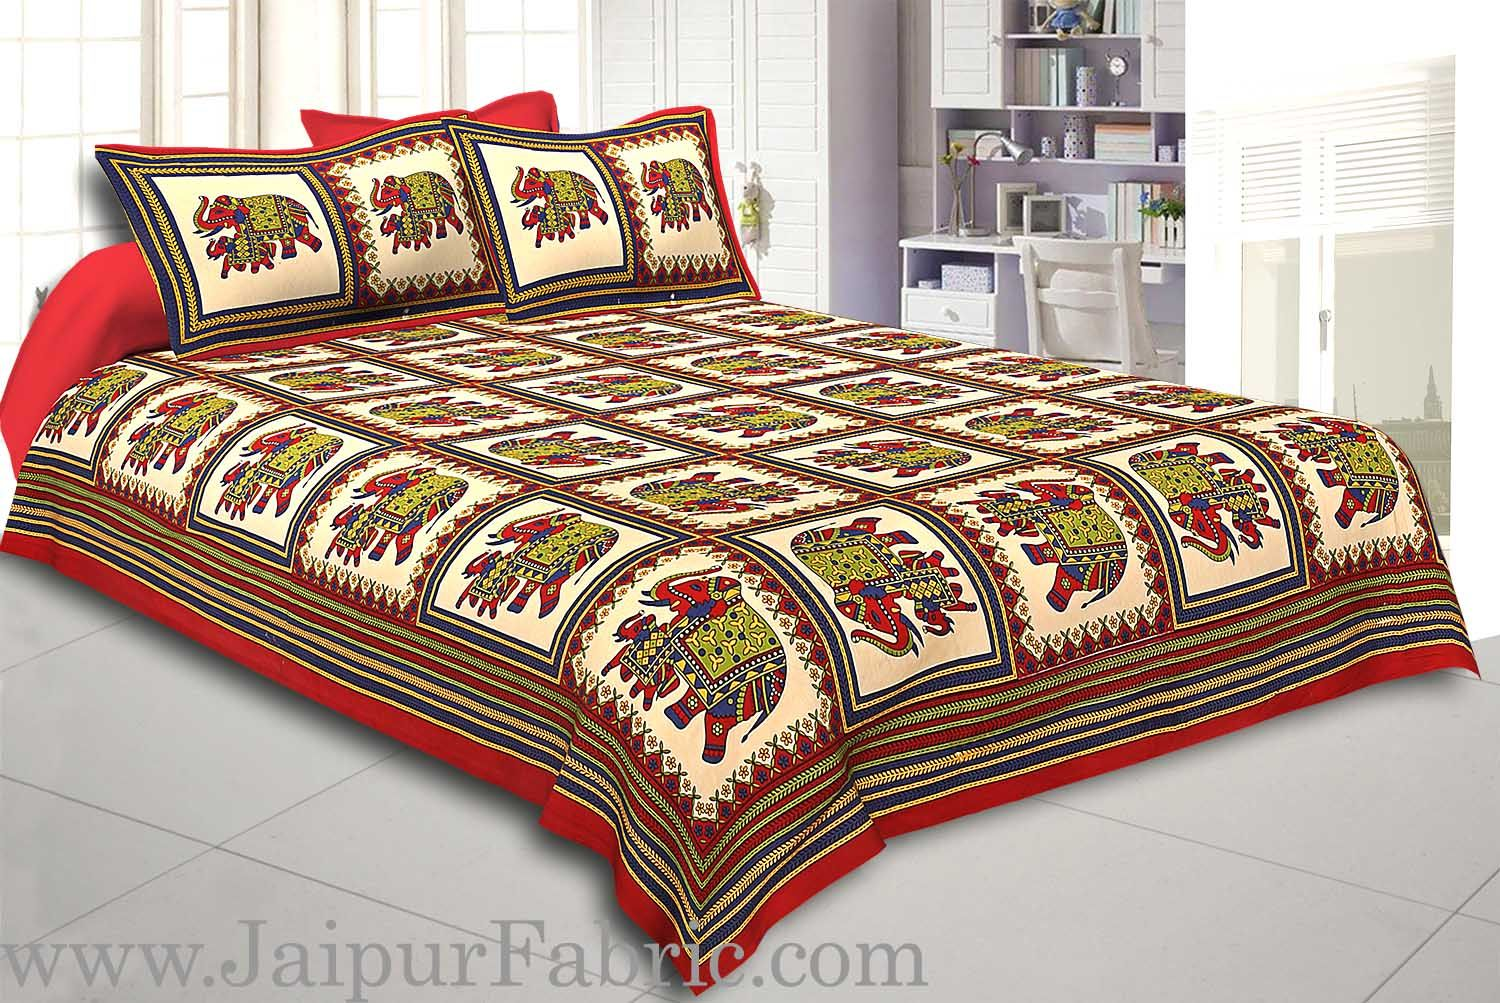 Red Border Big Elephant In Check Cotton Double Bed Sheet